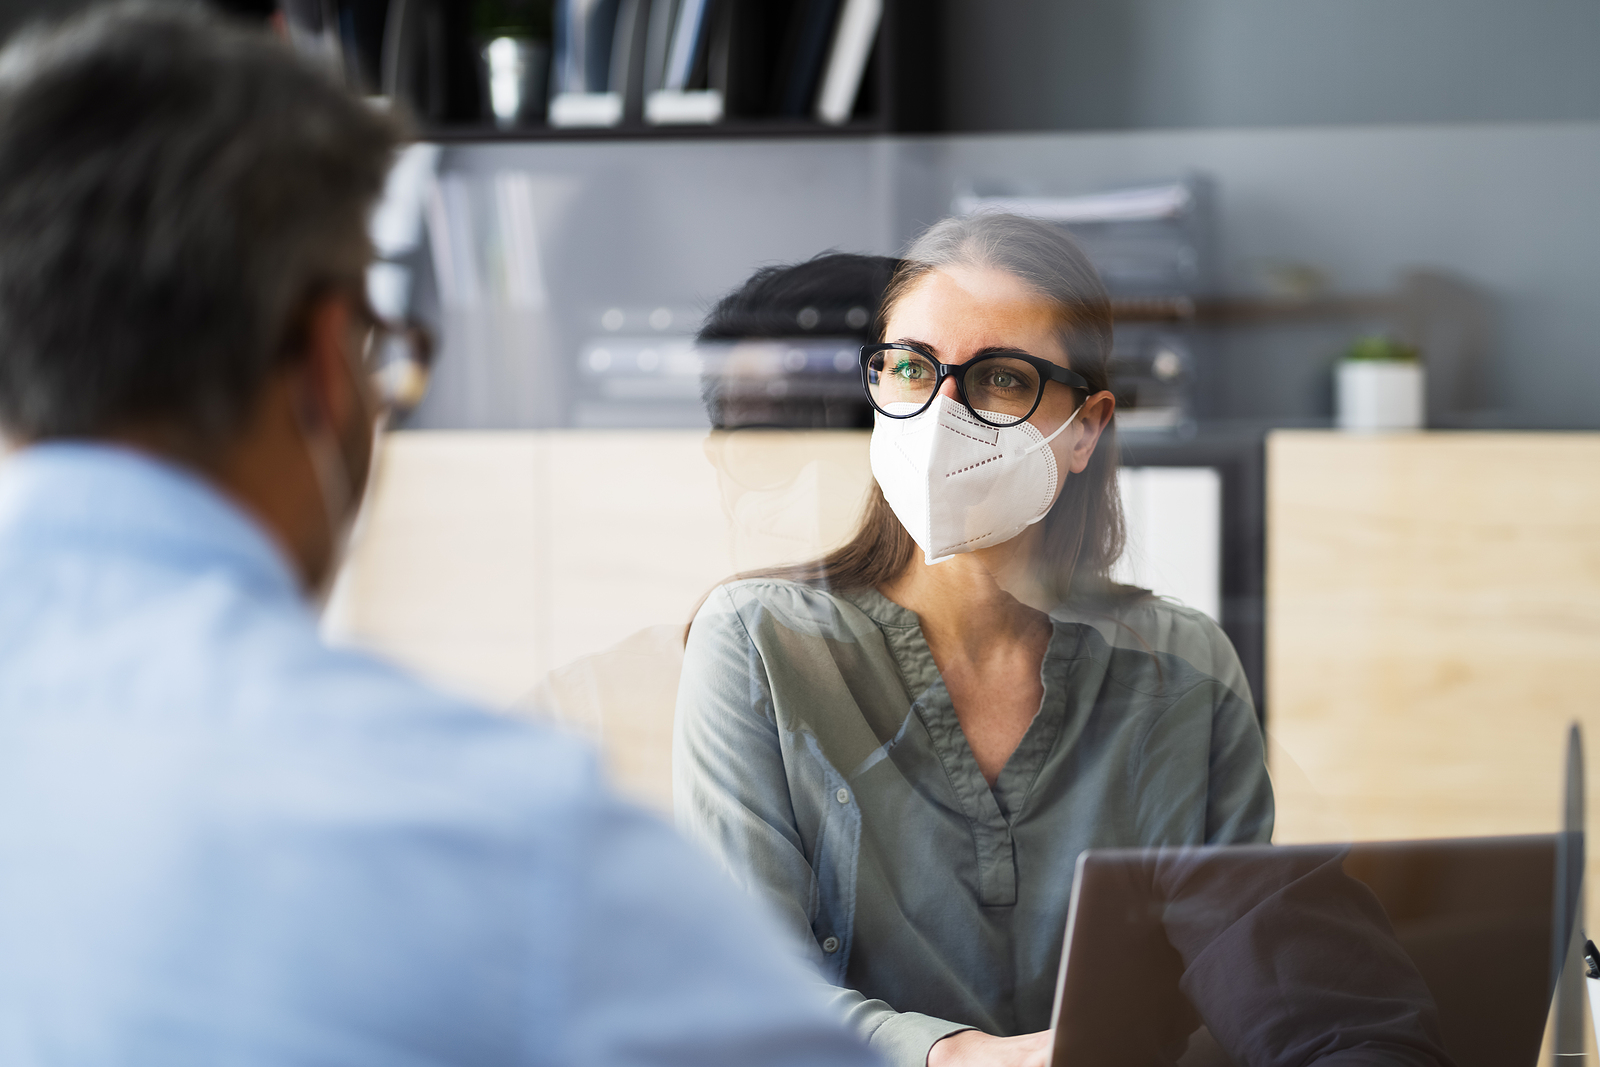 Navigating an In-Person Interview During the Pandemic